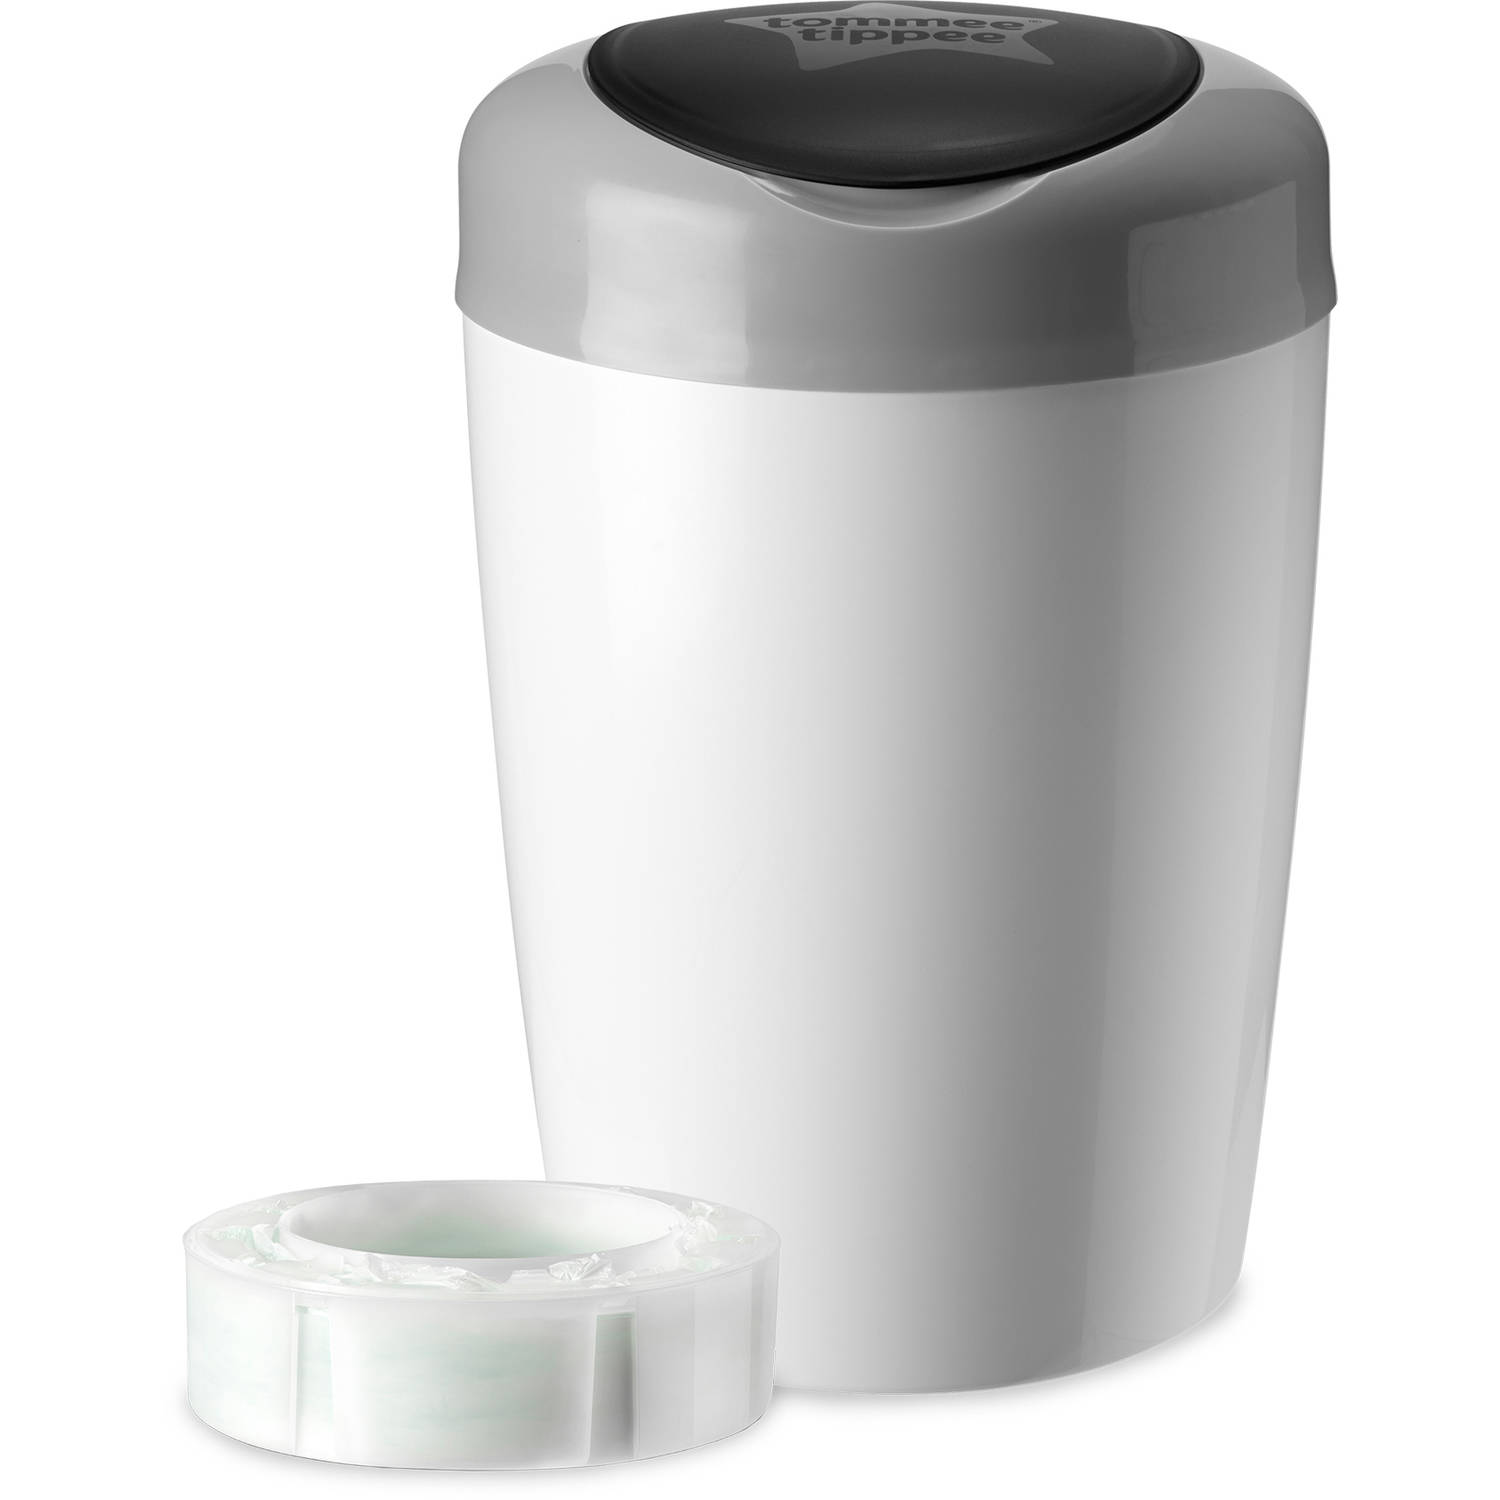 Tommee Tippee Simplee Diaper Pail + 1pk Cassette, Gray by Tommee Tippee